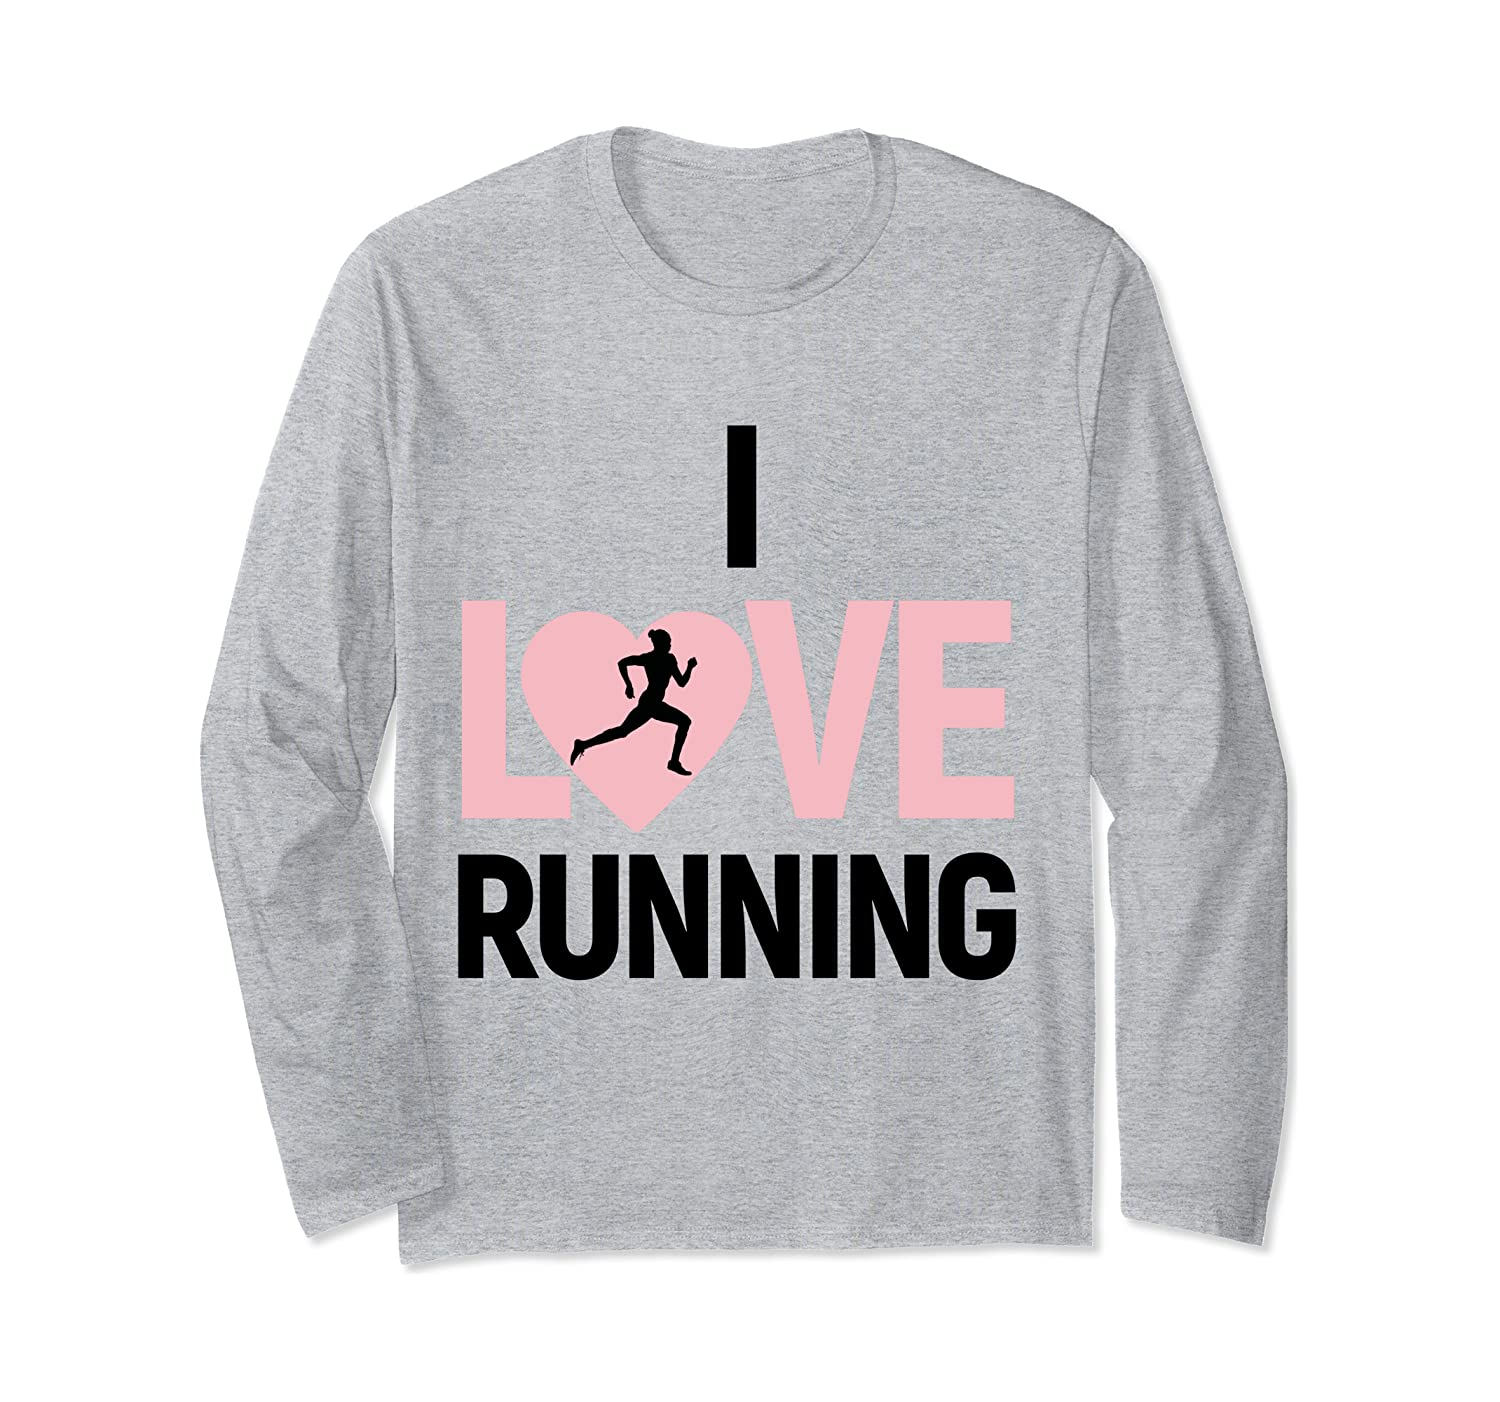 Christmas Gifts For Runners – (Heart Graphic) I Love Running Long Sleeve T-Shirt